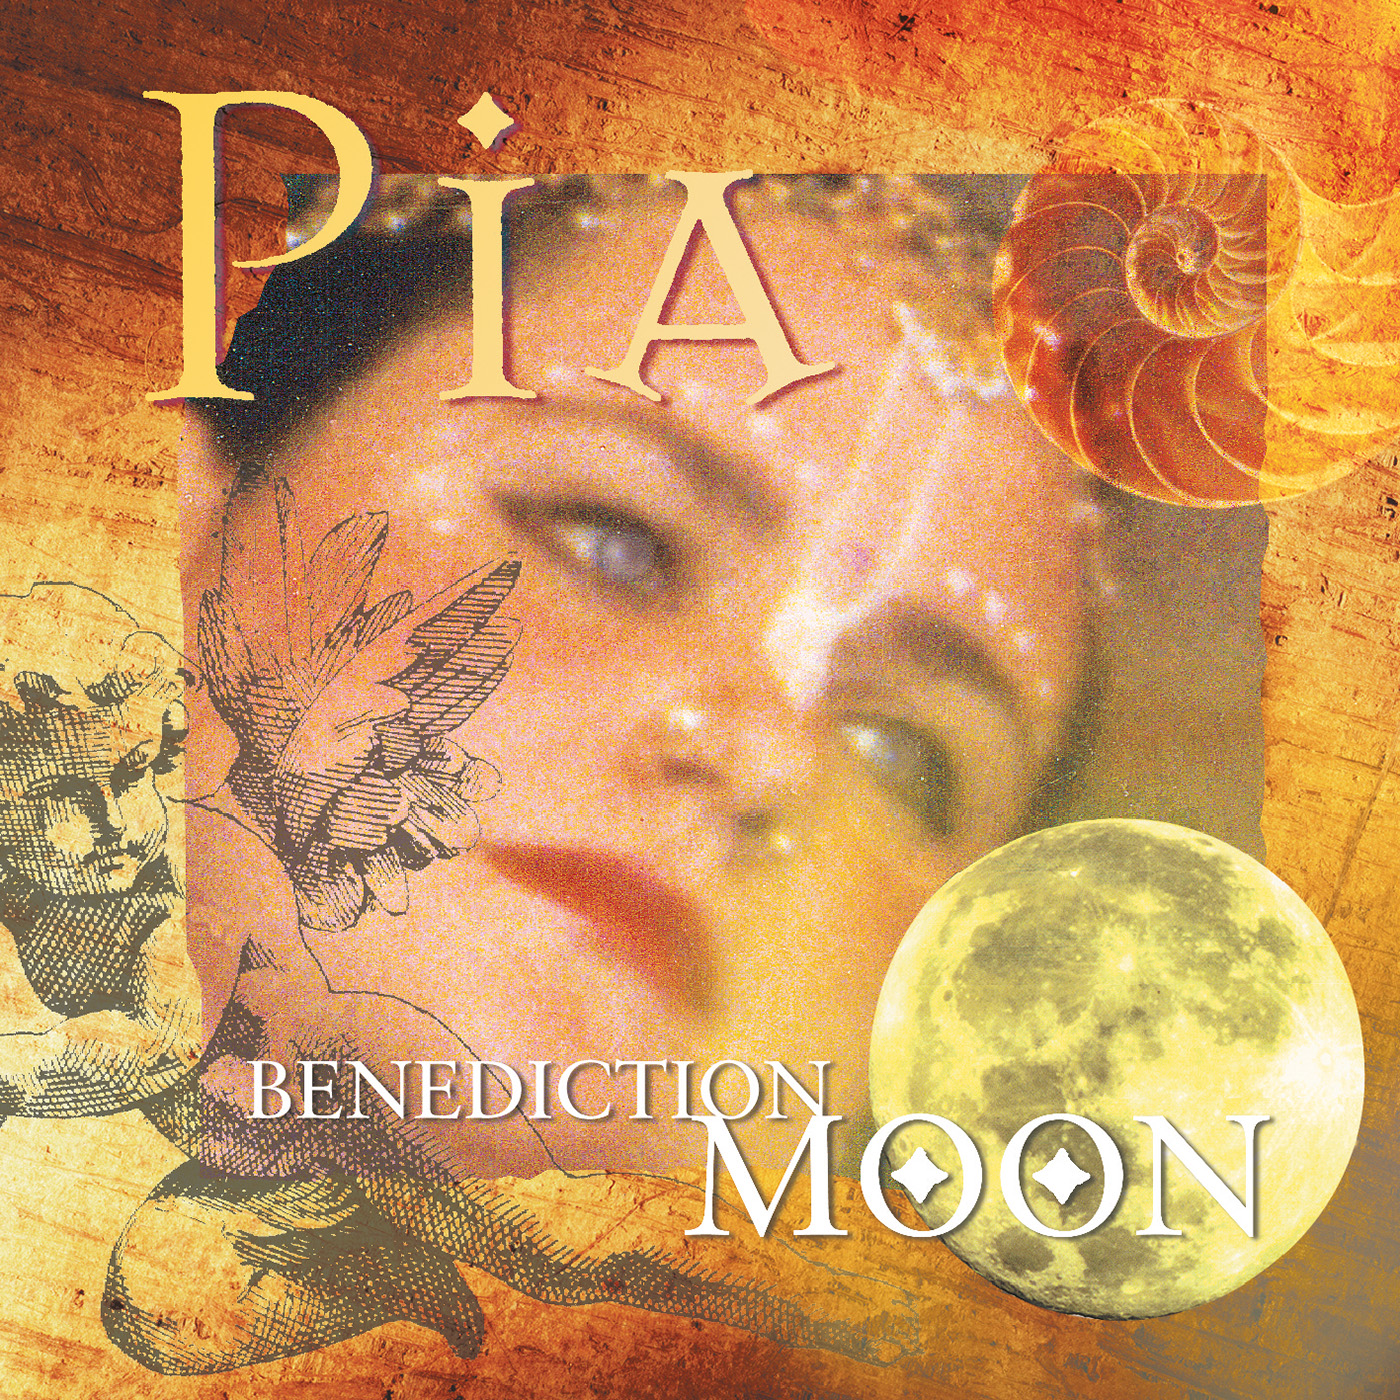 Benediction-Moon.jpg